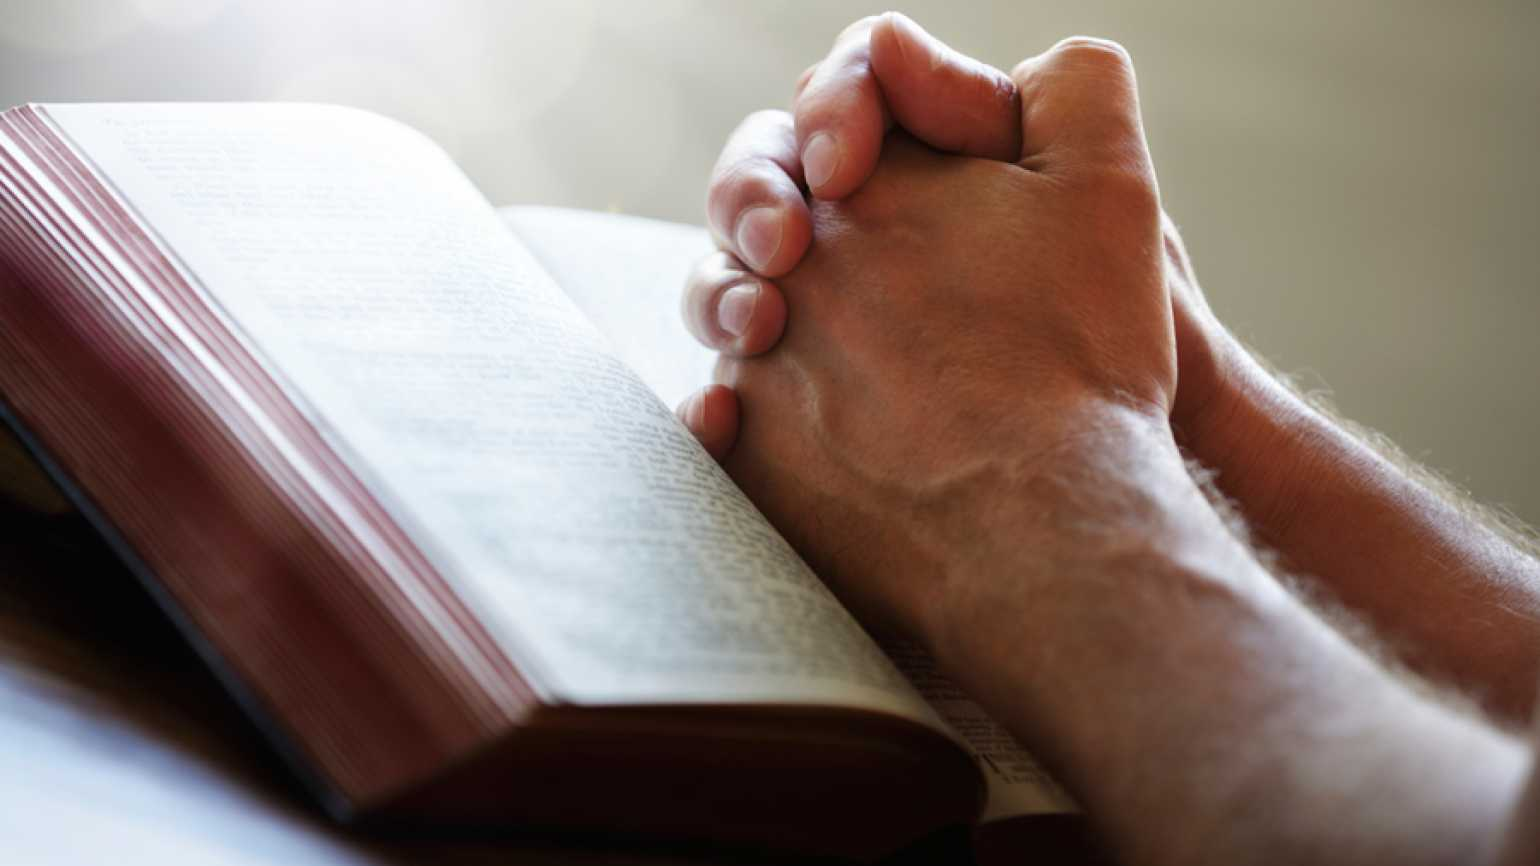 Guideposts: A man's hands, clasped in prayer, rest on the pages of an open Bible